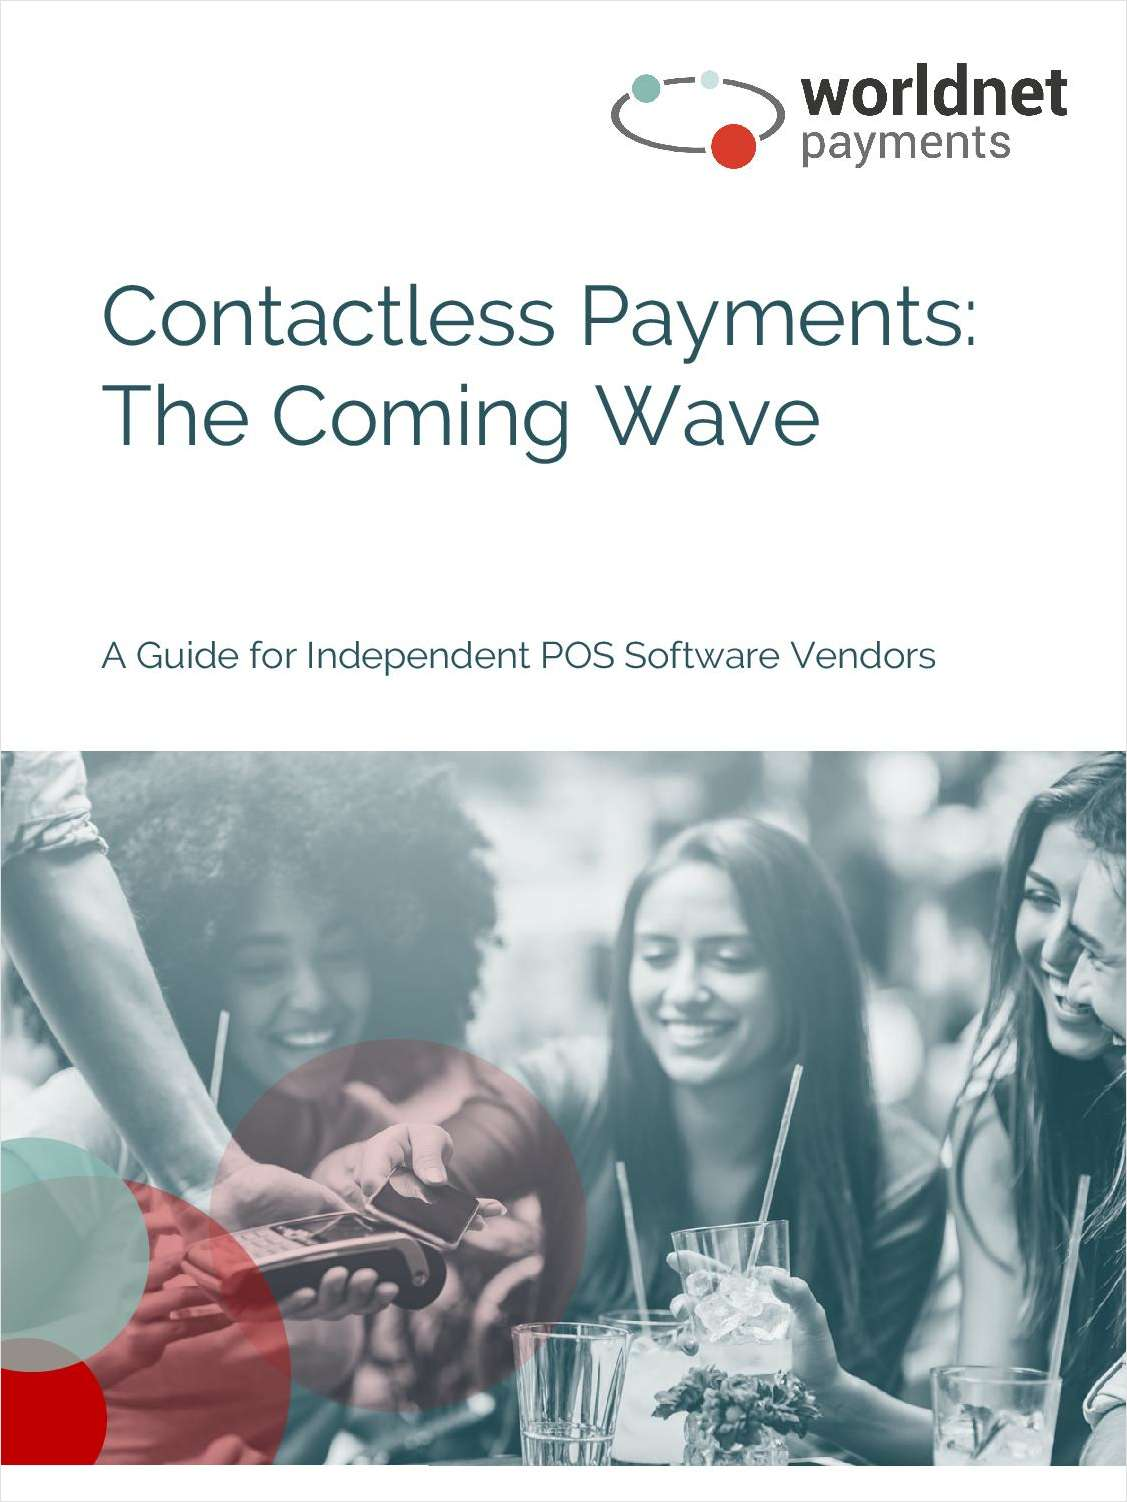 Is Your POS Software Ready for Contactless?